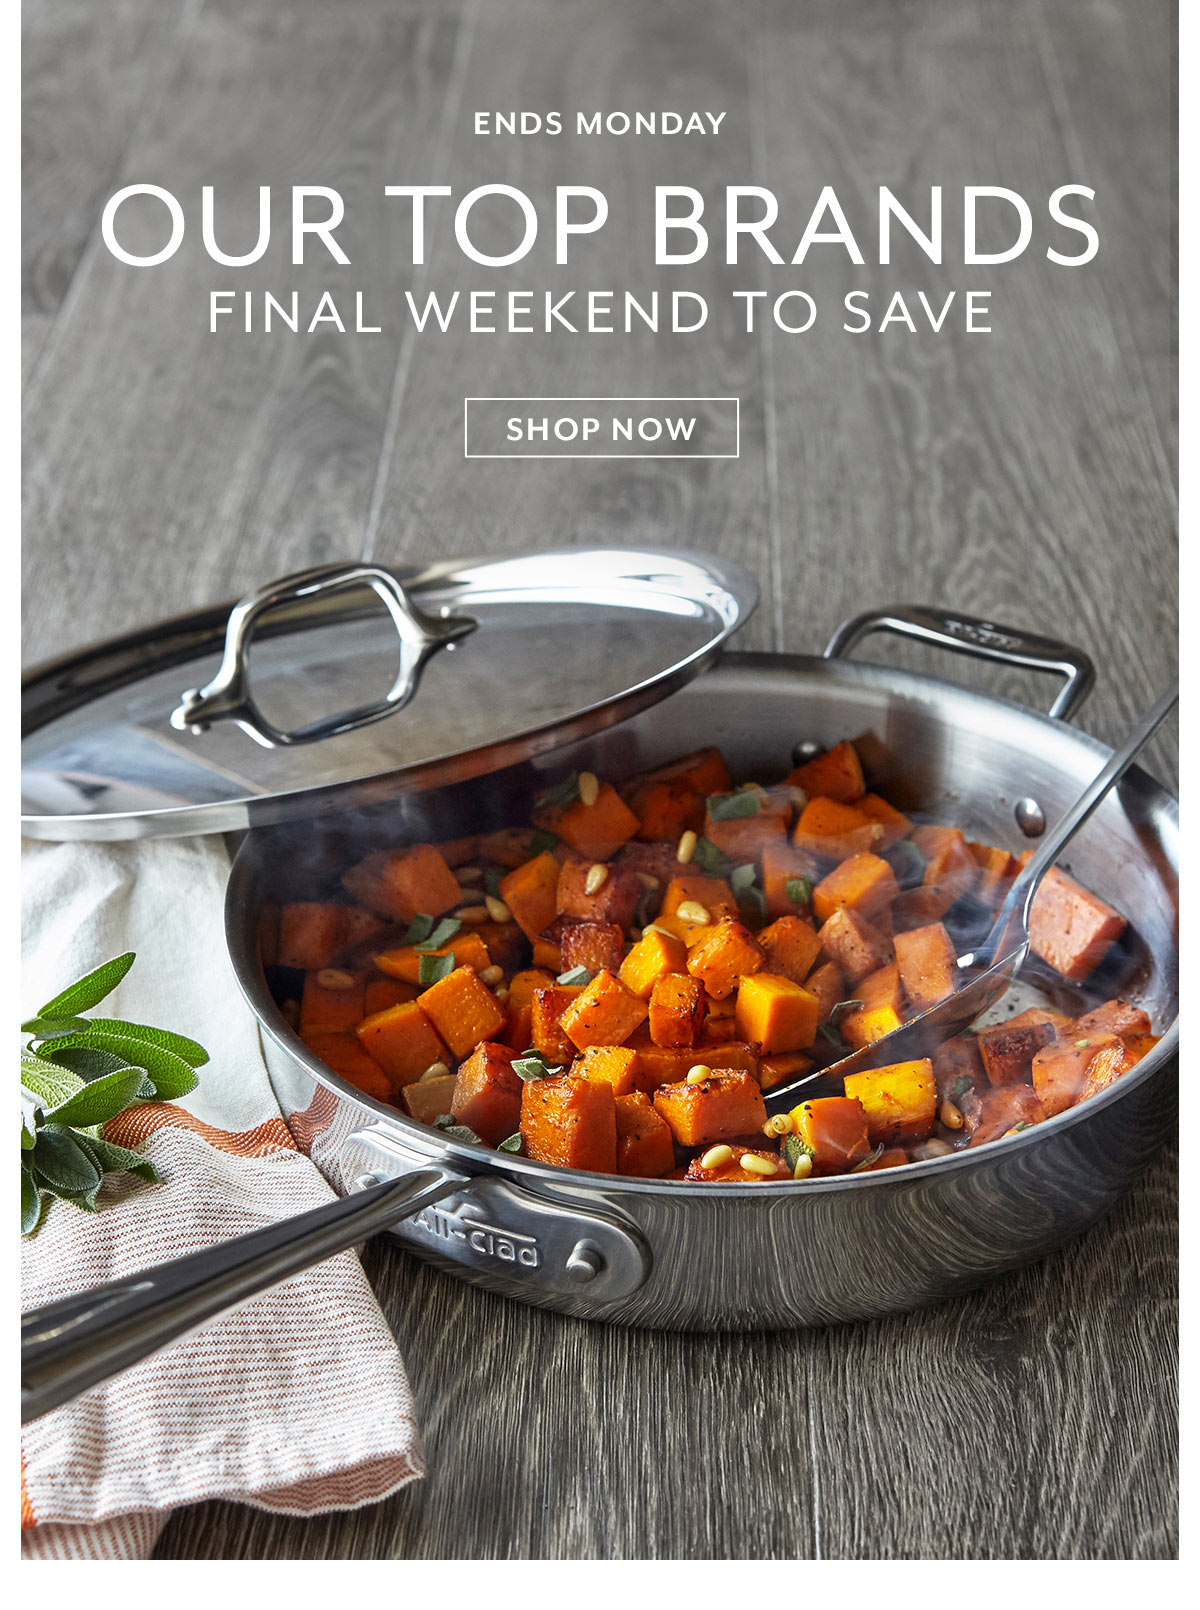 Our Top Brands • Final Weekend to Save